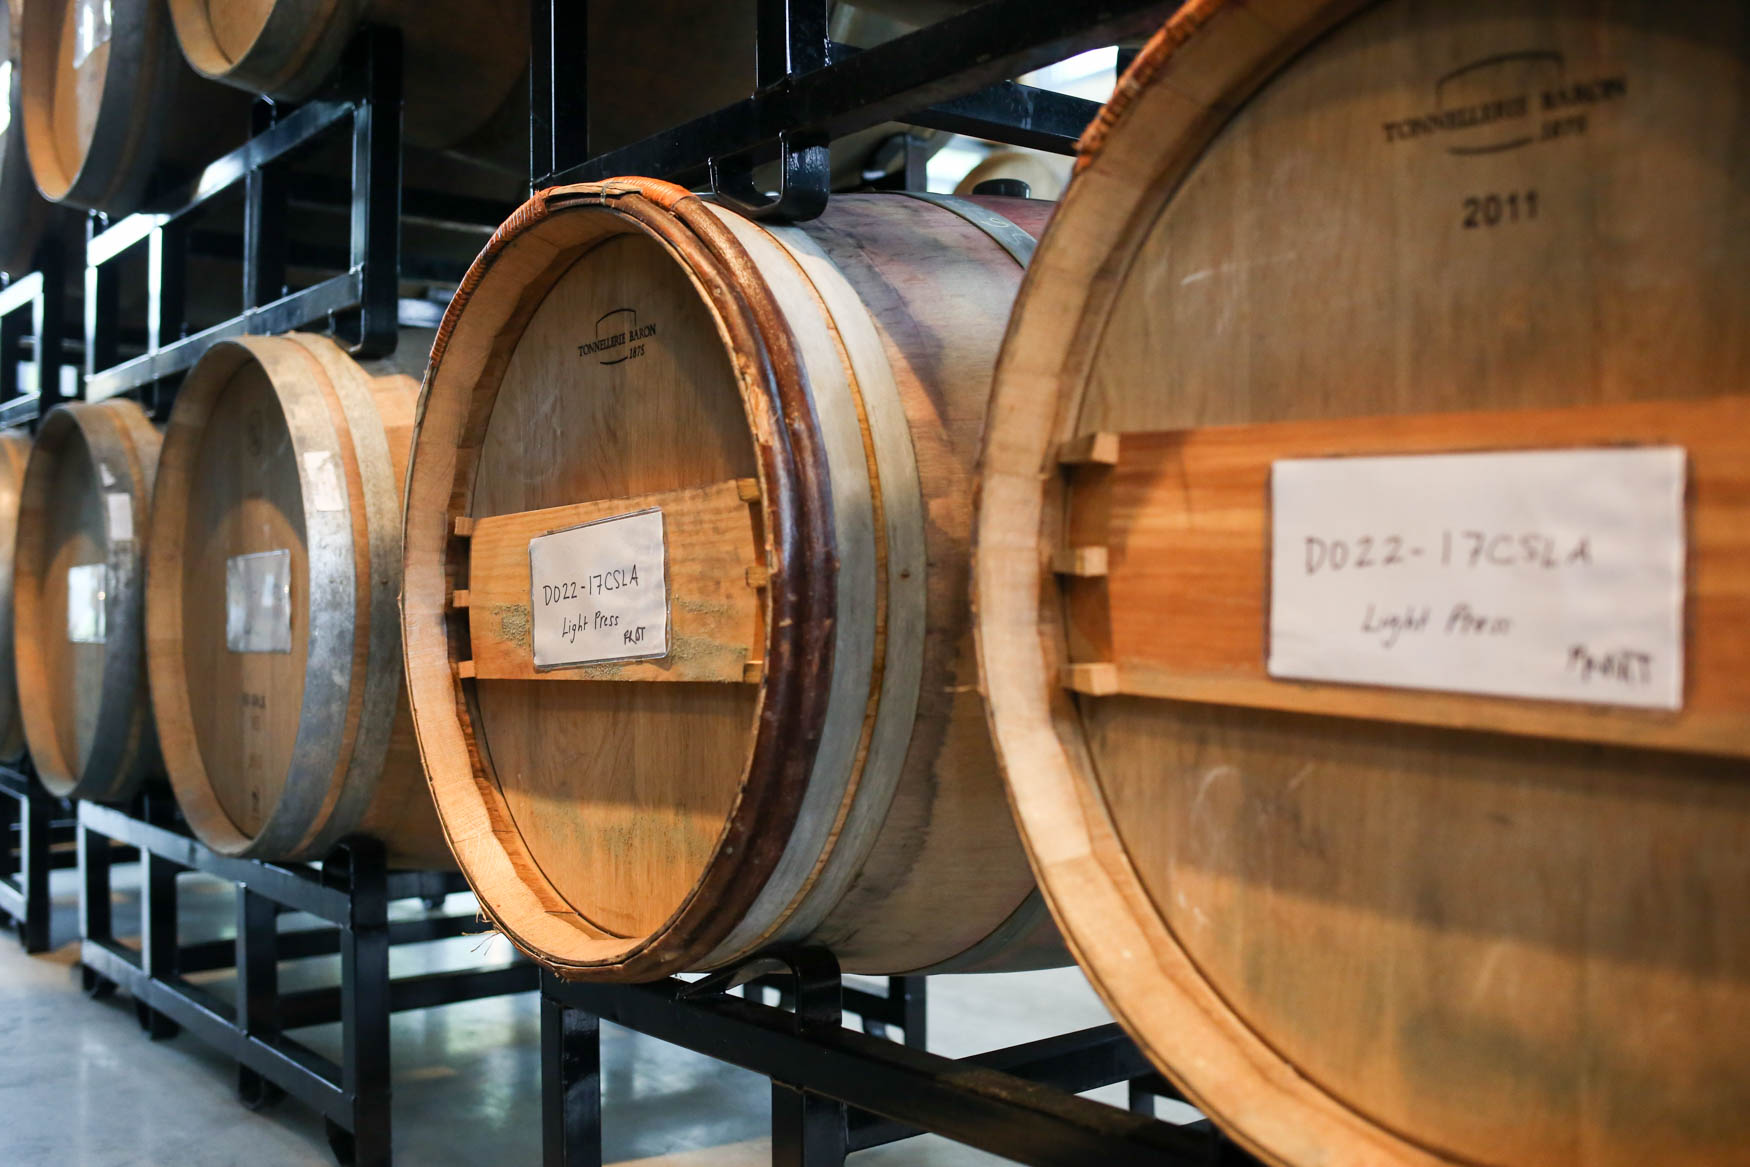 The wine is stored in oak barrels.{ }(Amanda Andrade-Rhoades/DC Refined)